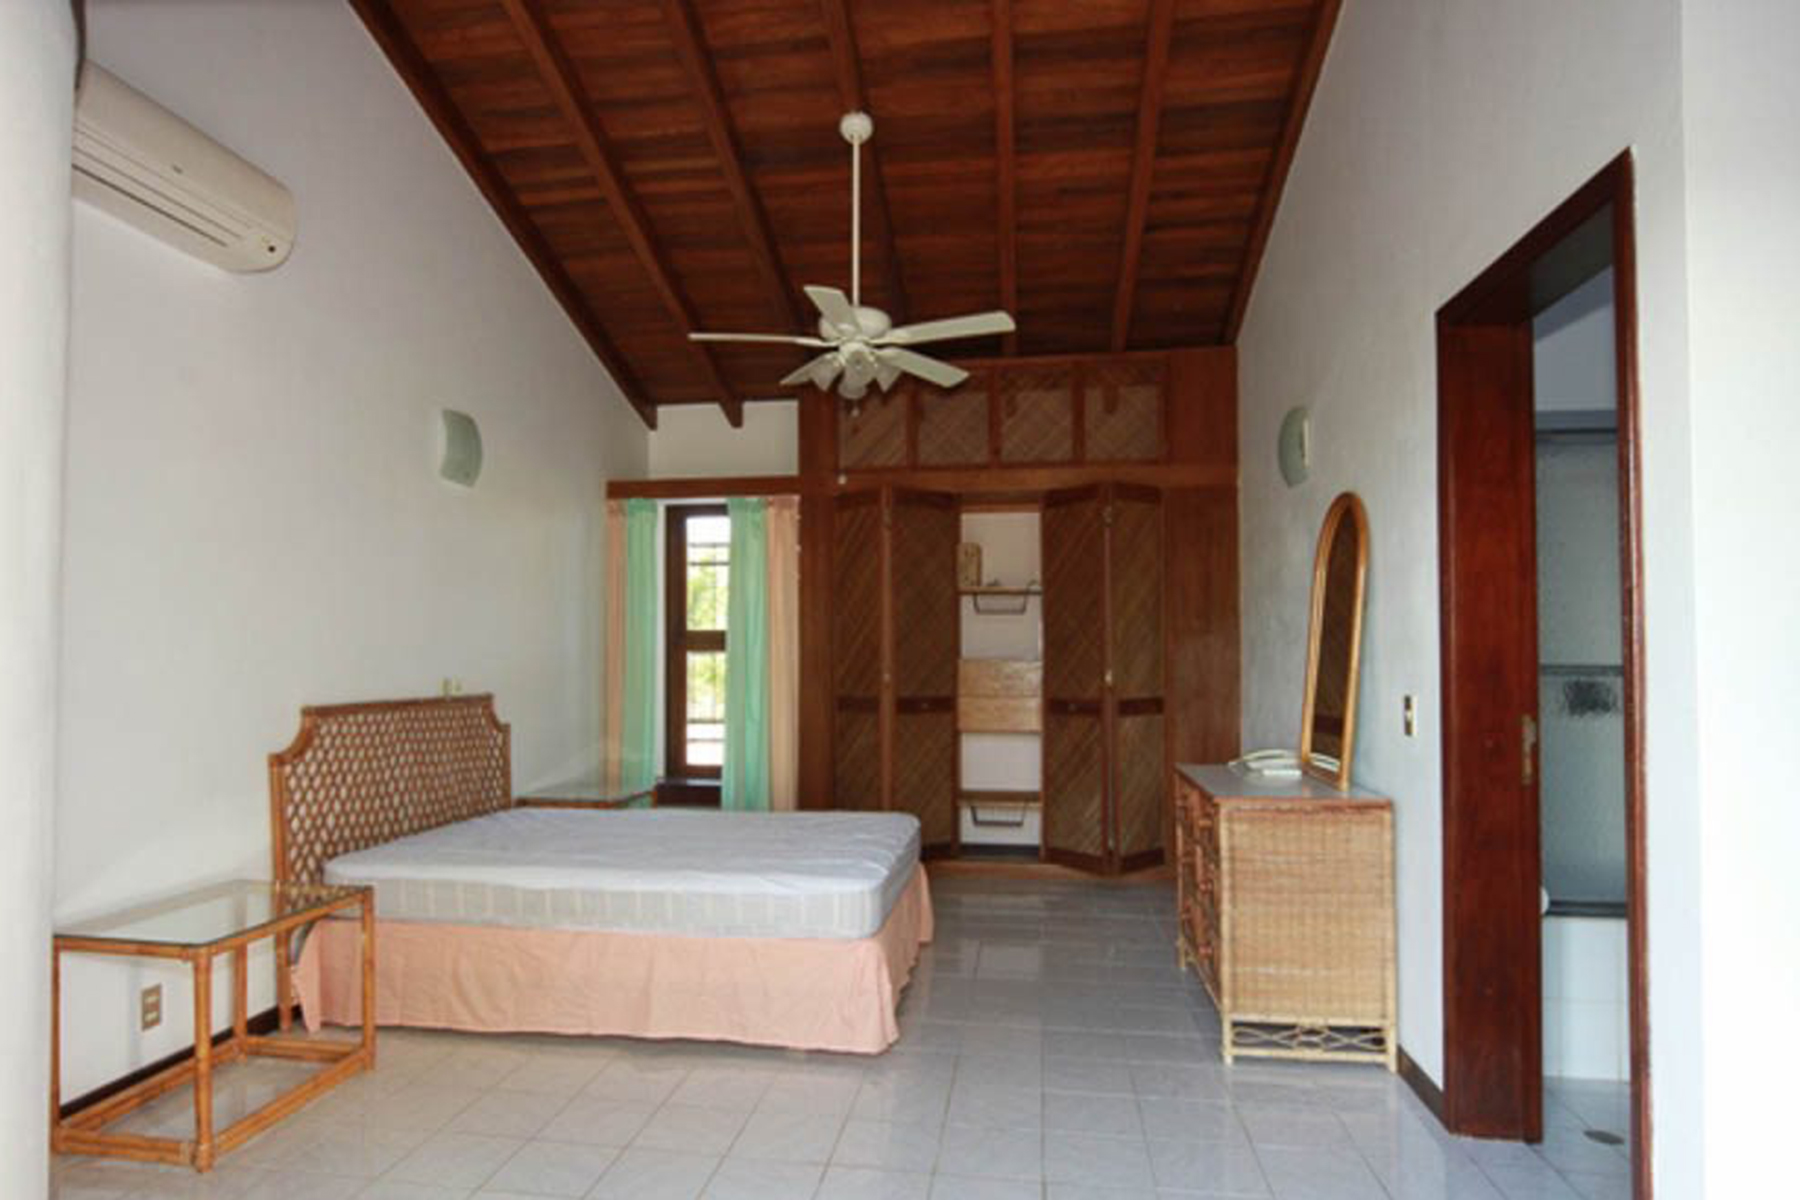 Additional photo for property listing at Villa Turkesa Other Cities In Bonaire, Cities In Bonaire Bonaire